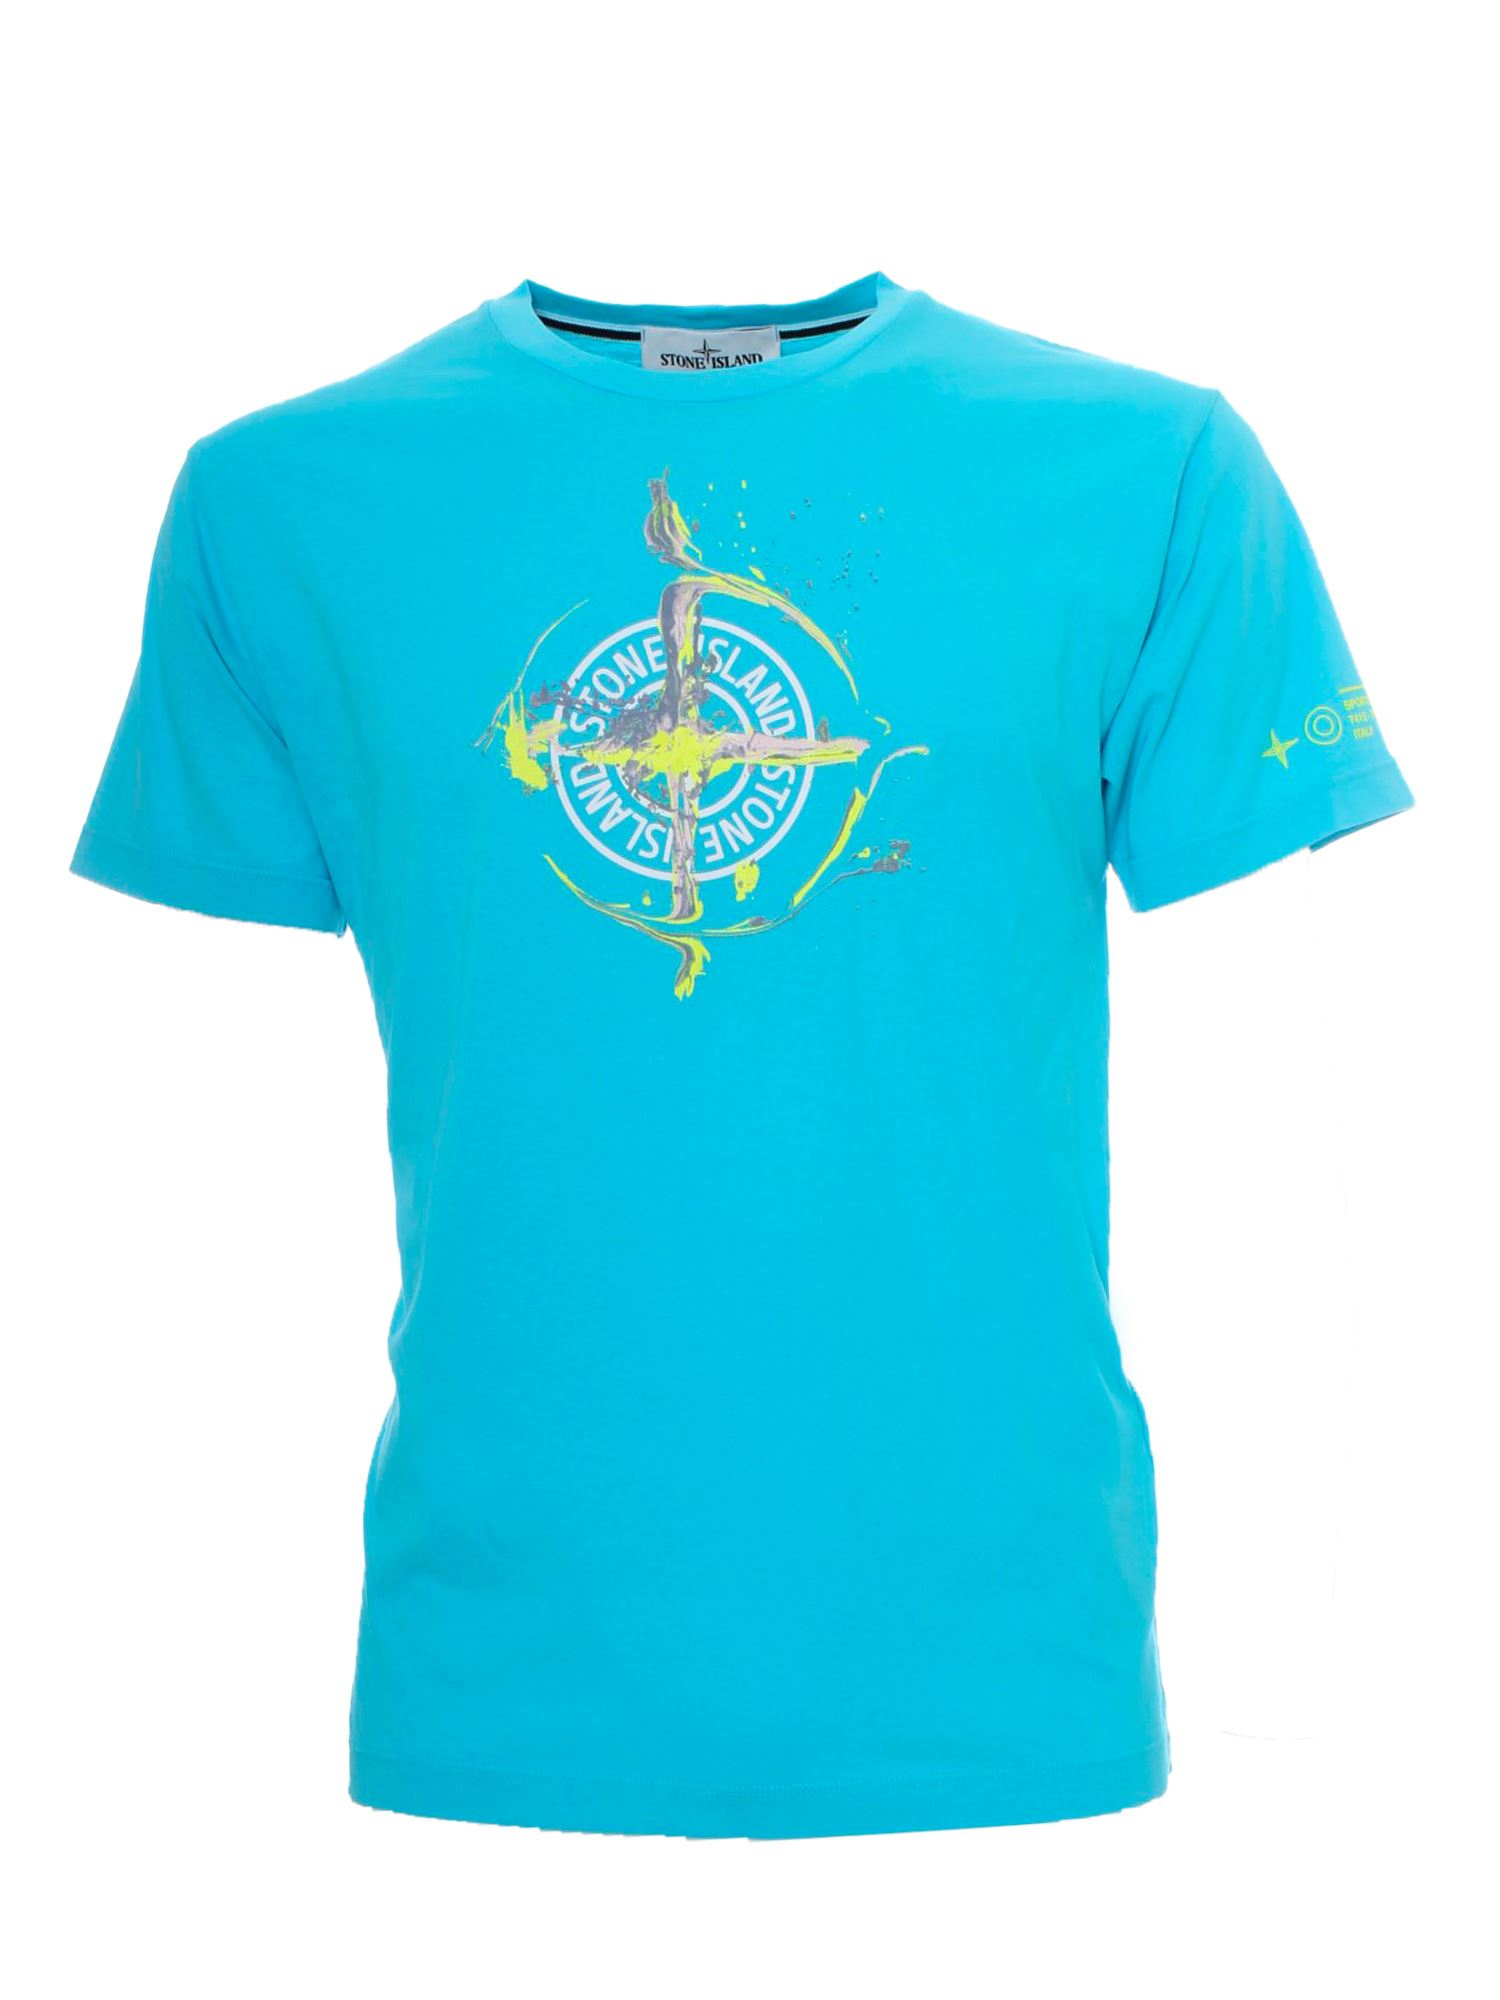 STONE ISLAND FRONT BRANDED T-SHIRT IN TURQUOISE